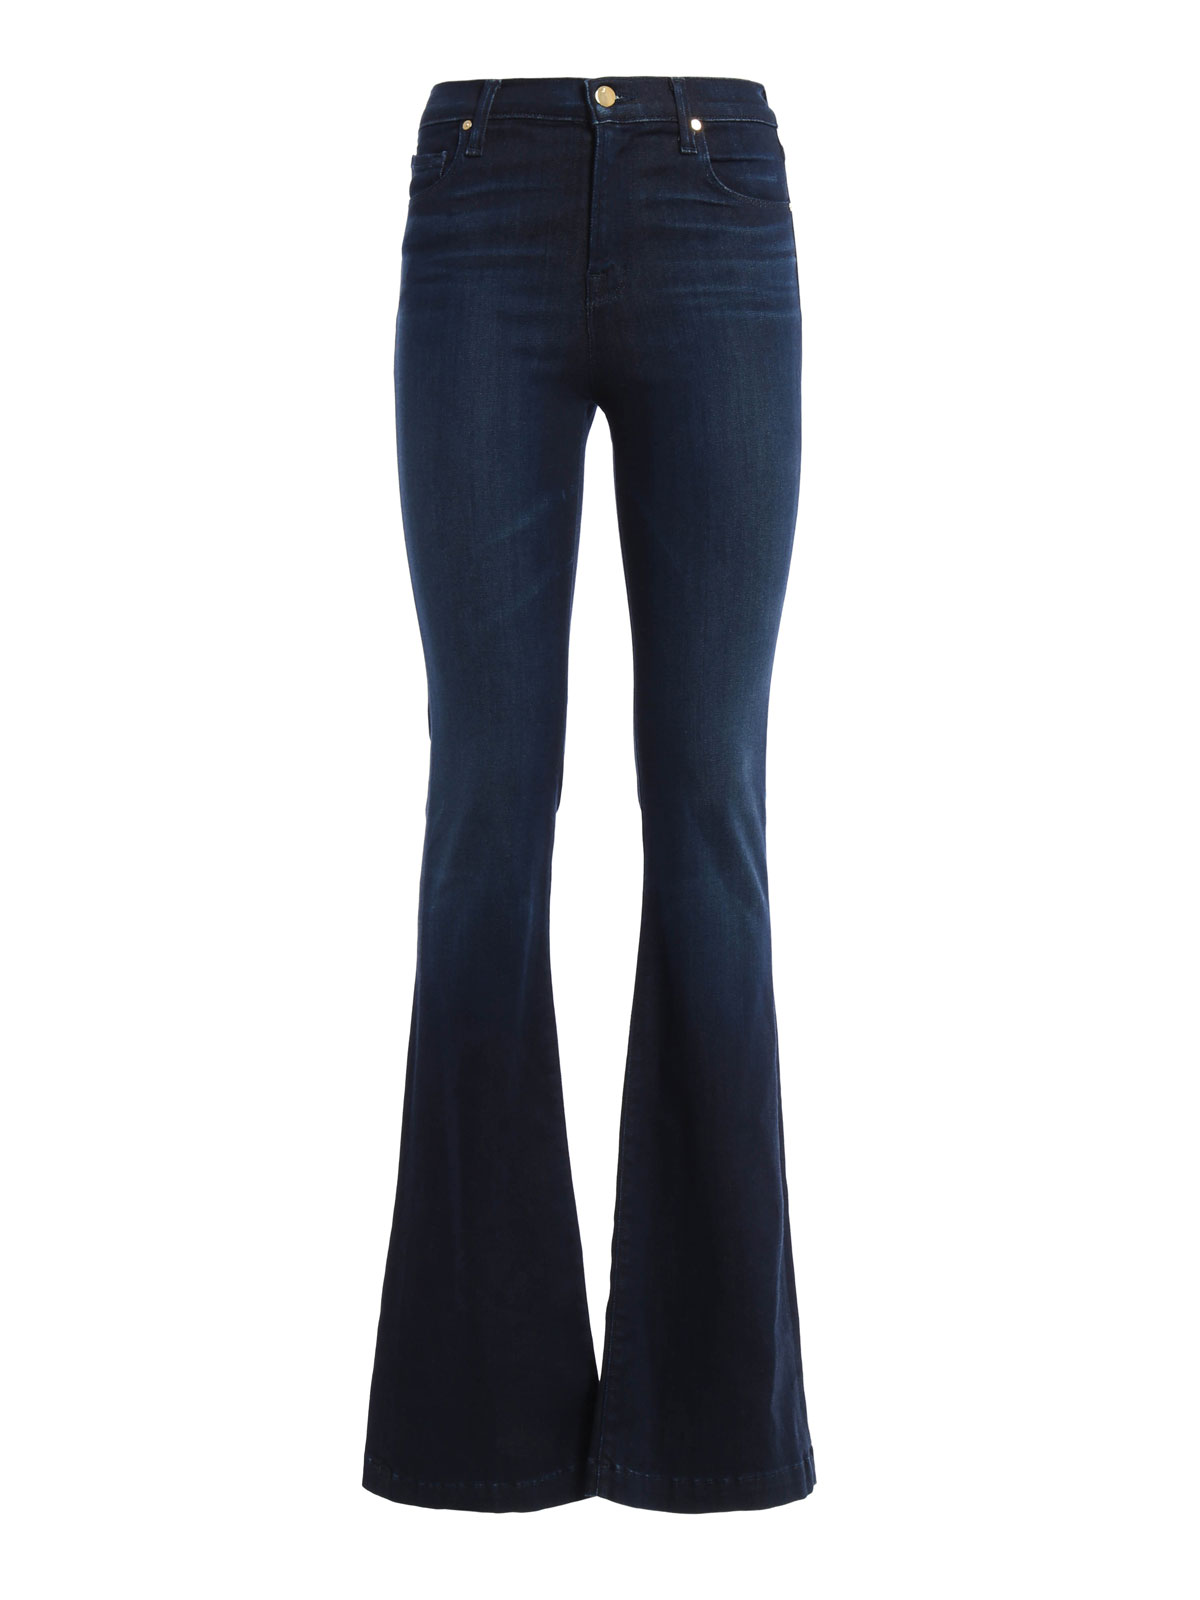 maria flare stretch jeans by j brand bootcut jeans ikrix. Black Bedroom Furniture Sets. Home Design Ideas